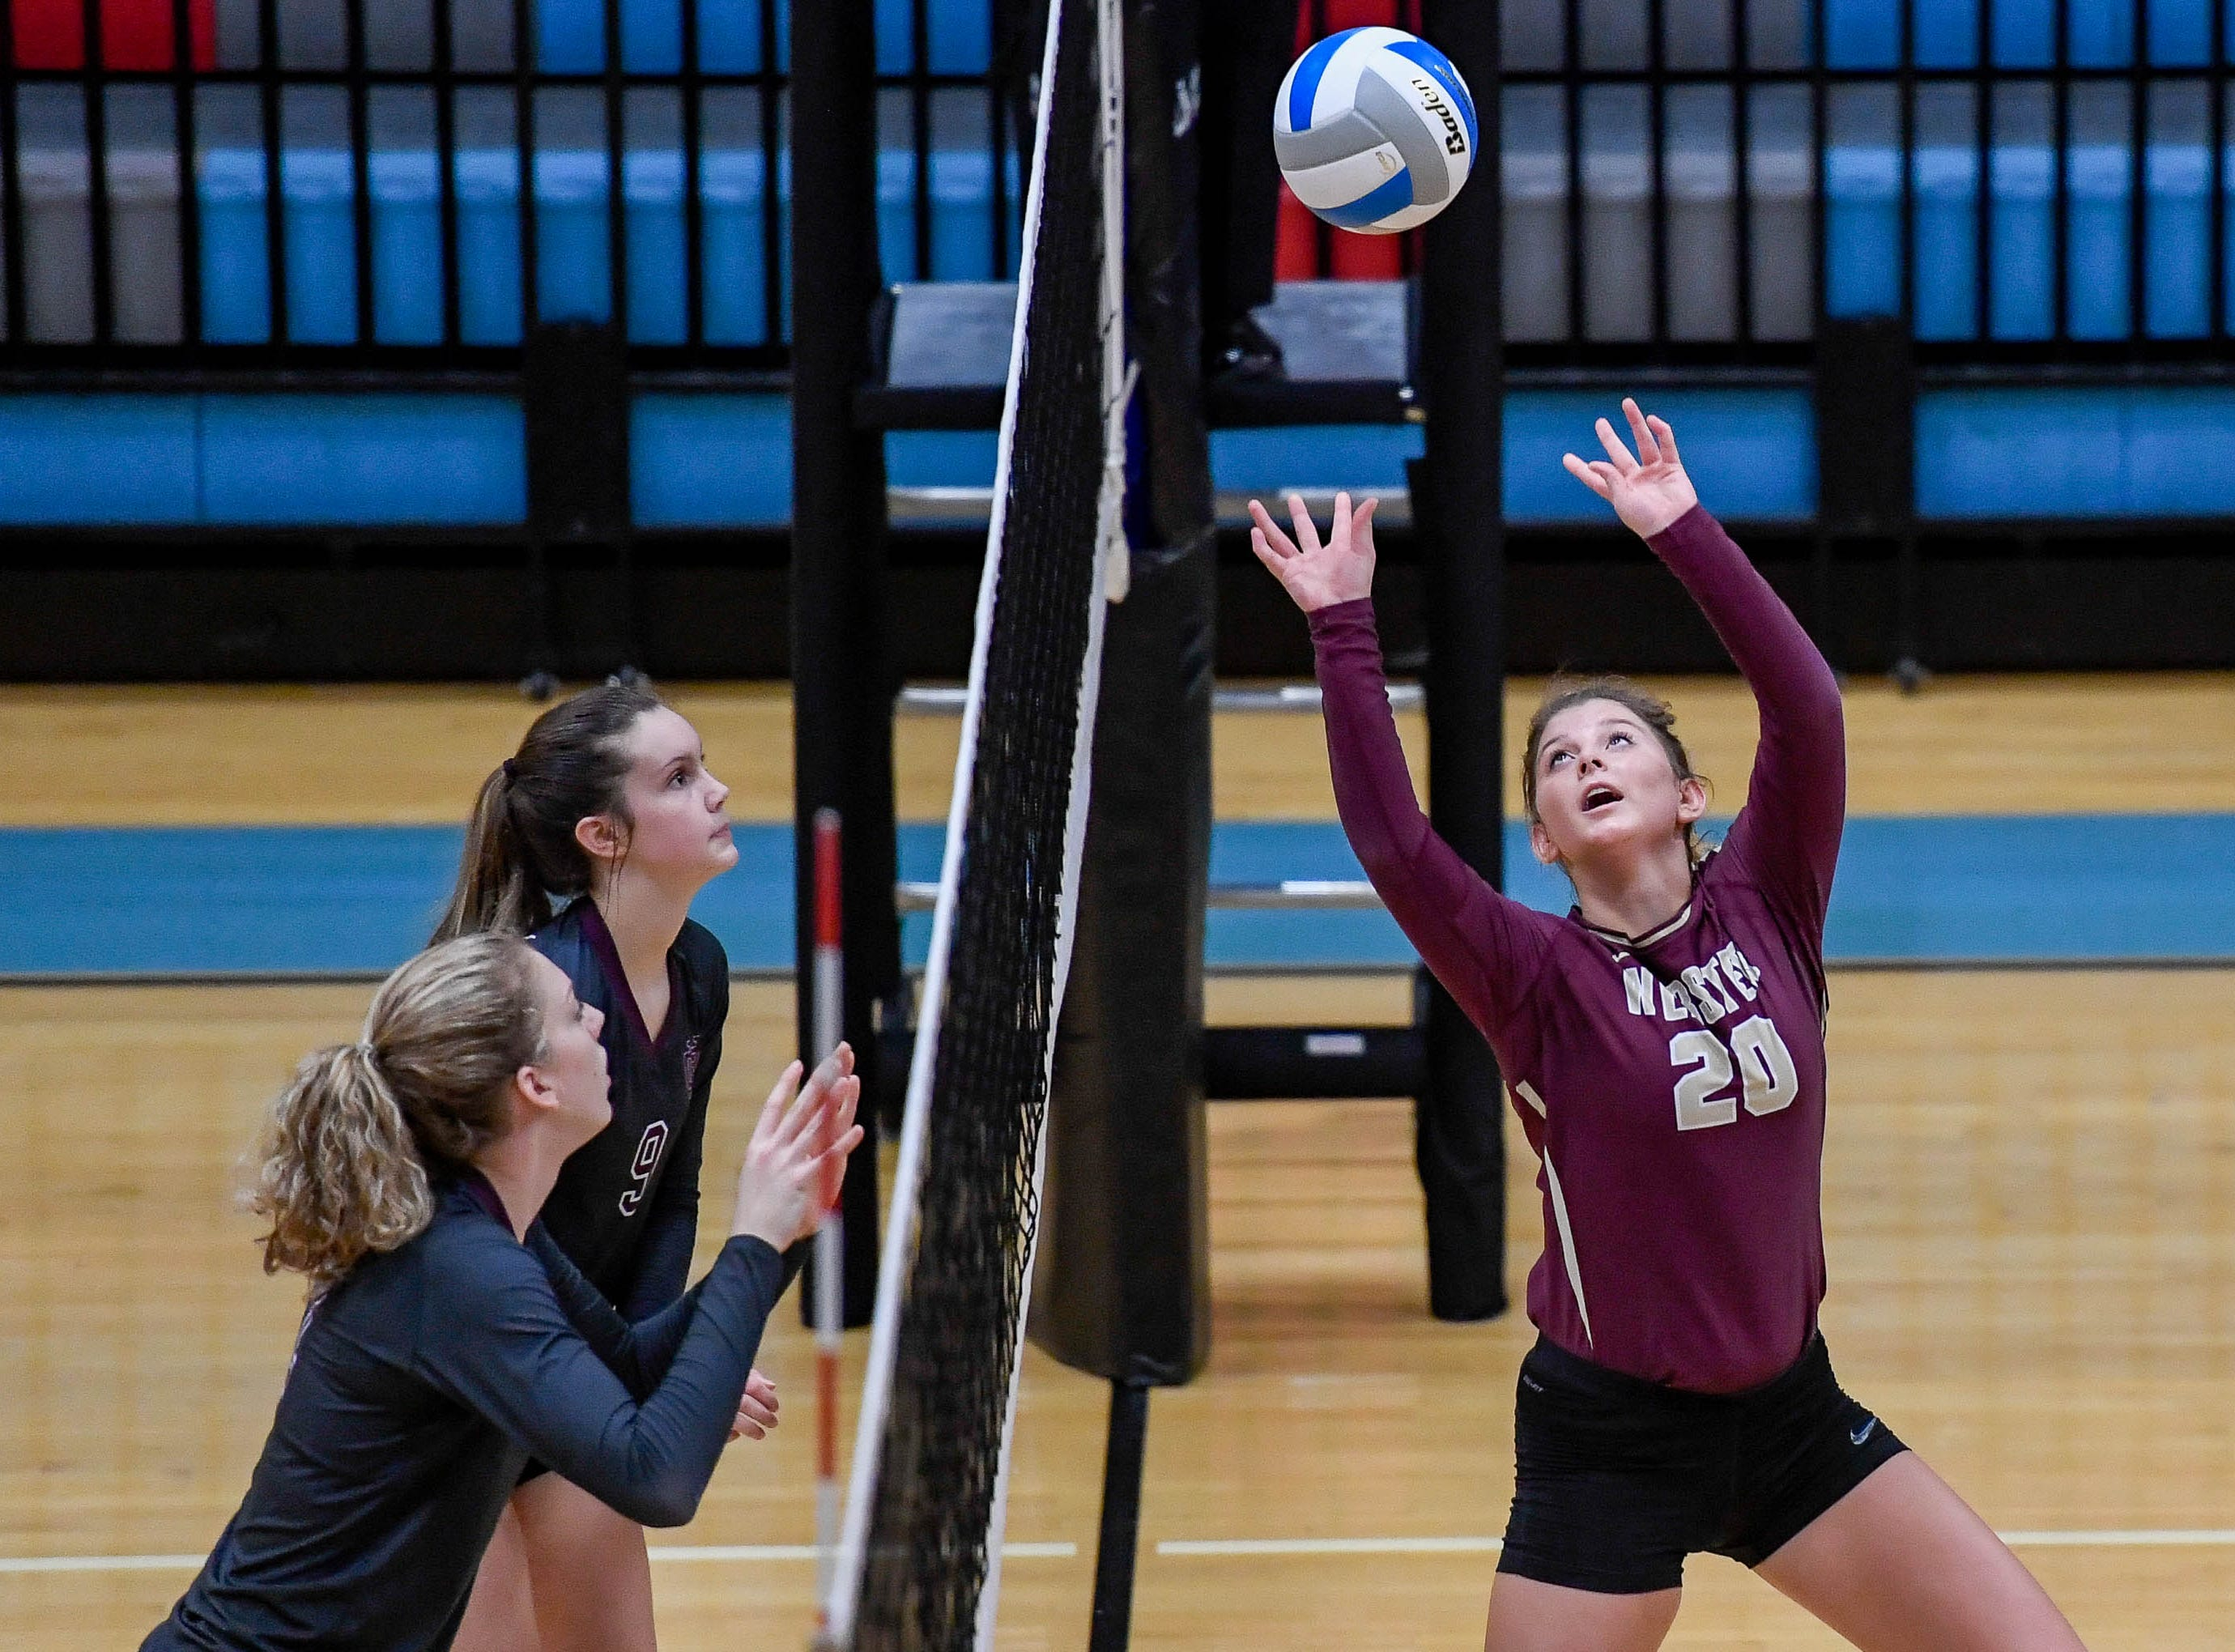 Webster's Lana Eastwood (20) plays at the net as the Henderson County Lady Colonels play the Webster County Lady Trojans in the District Volleyball Tournament championship match in Morganfield, Tuesday, October 9, 2018.